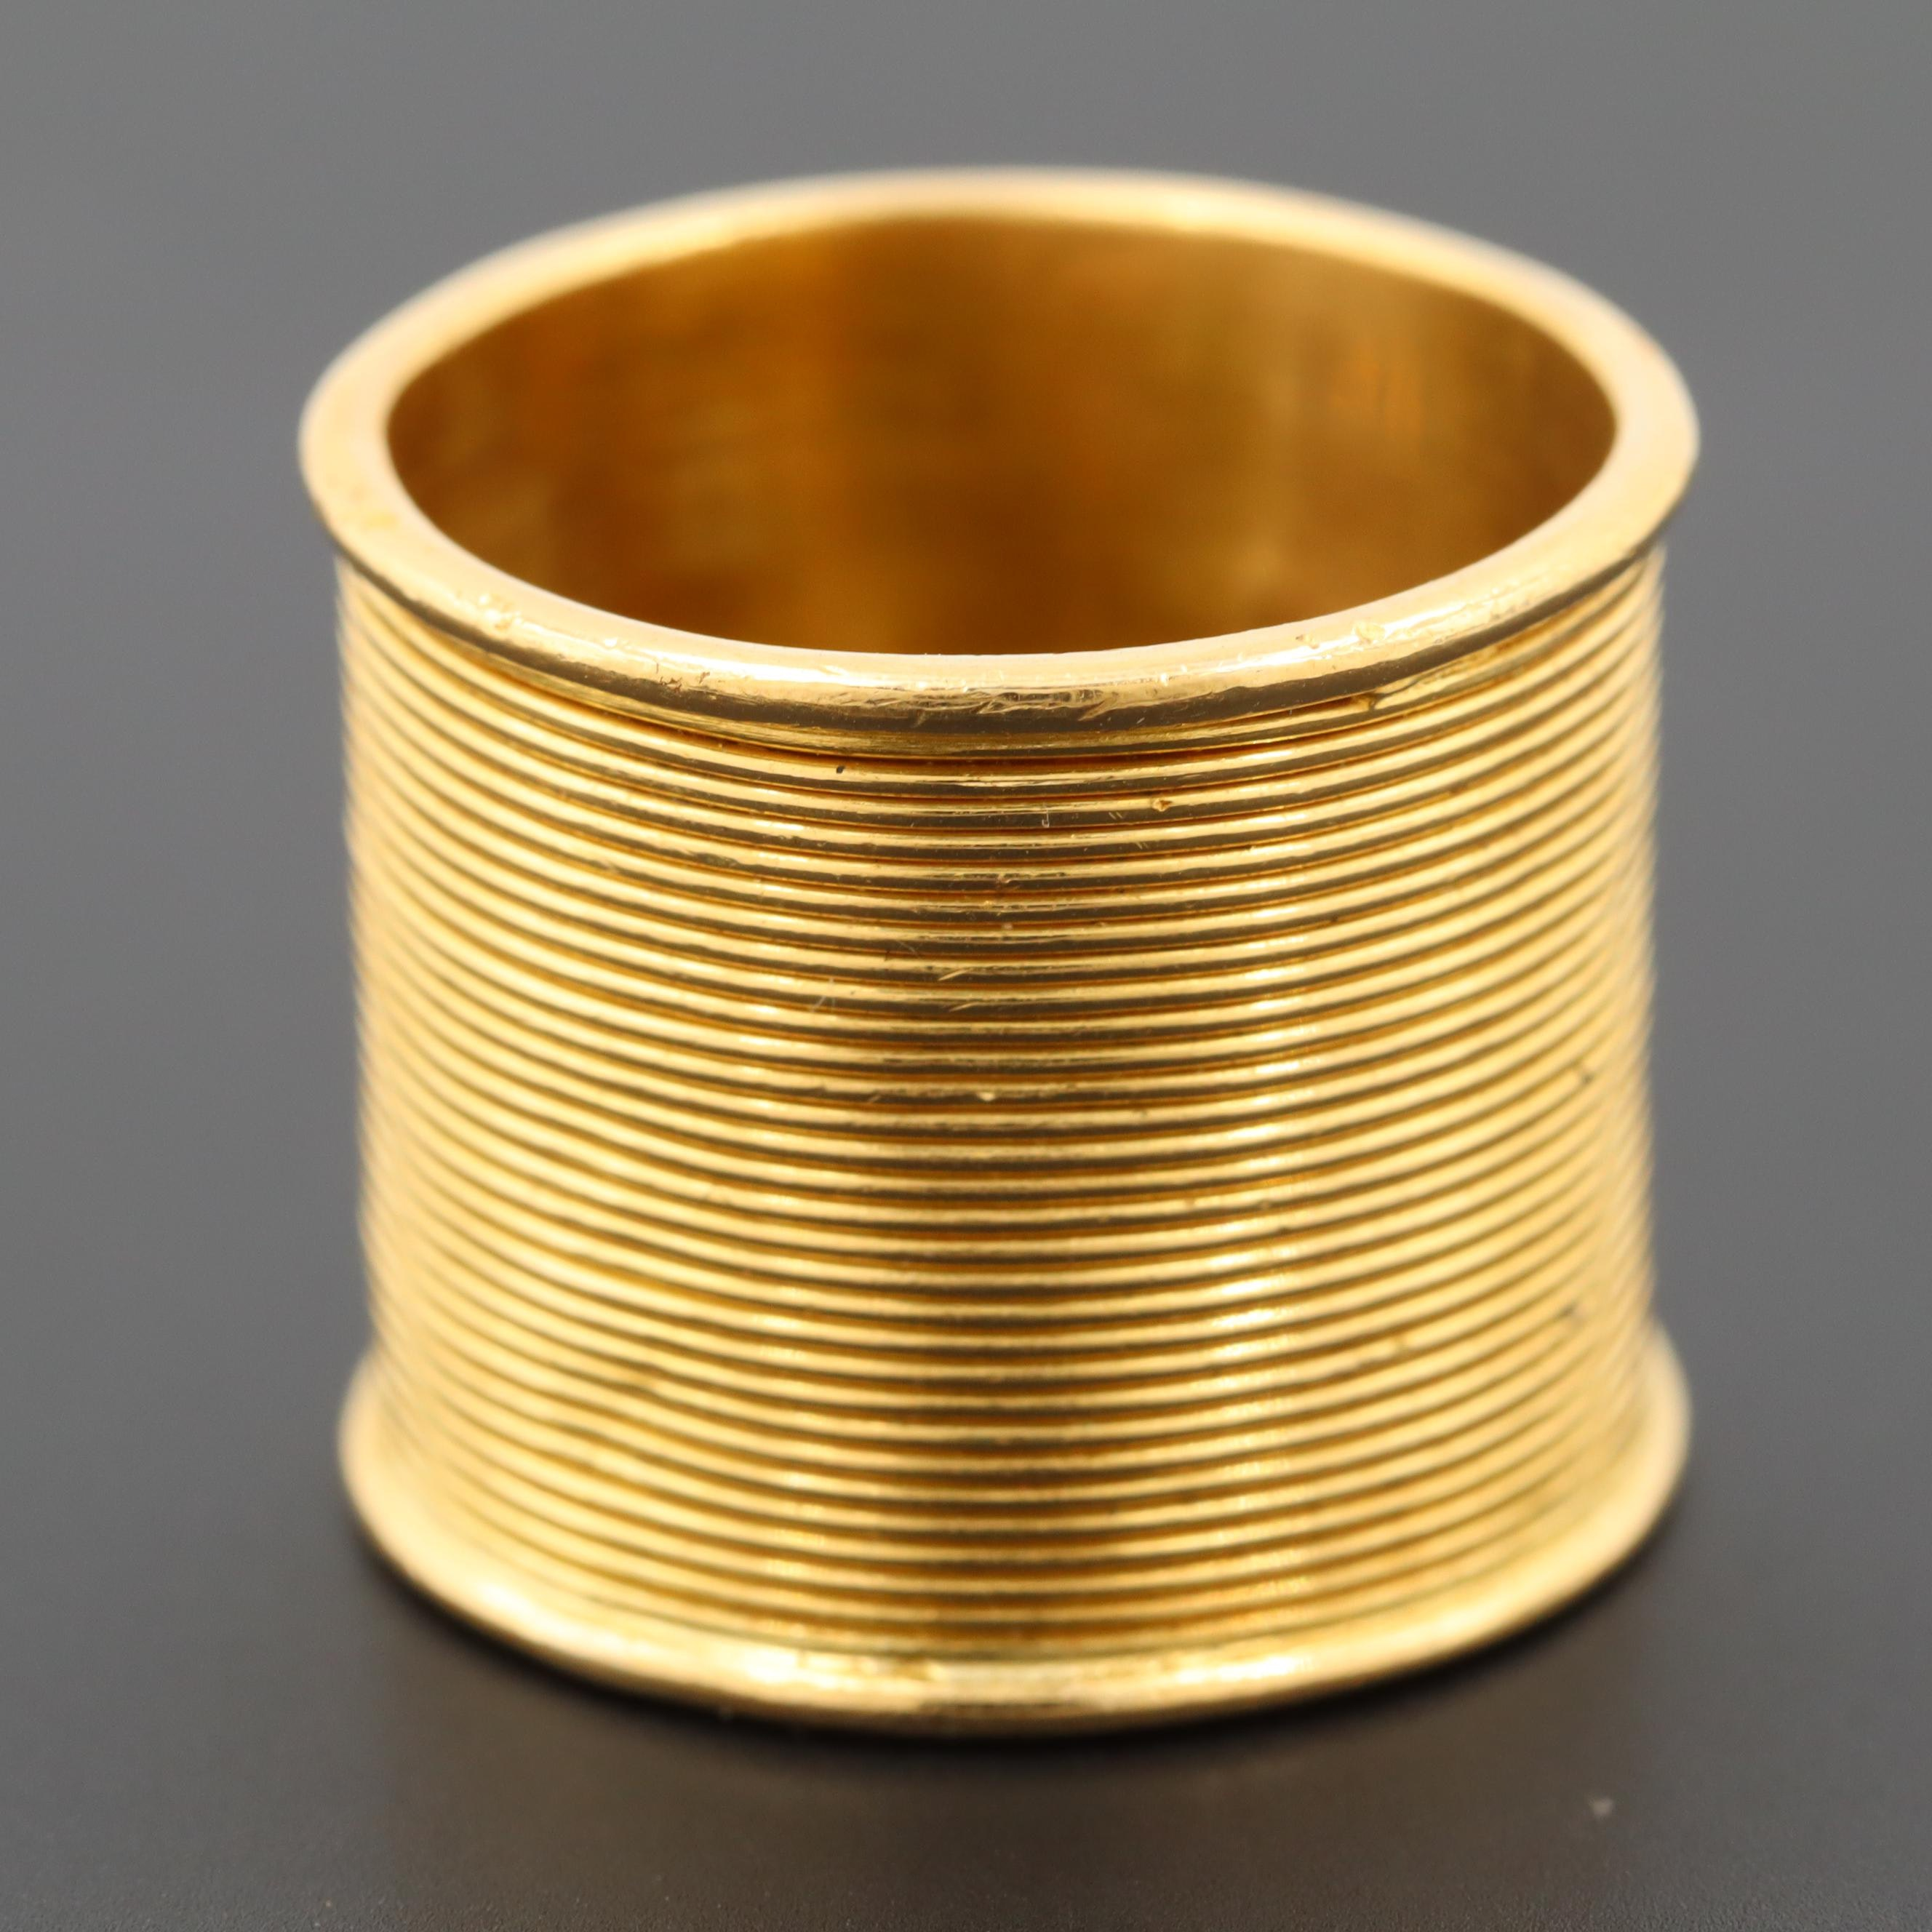 22K Yellow Gold Coil Wrap Ring